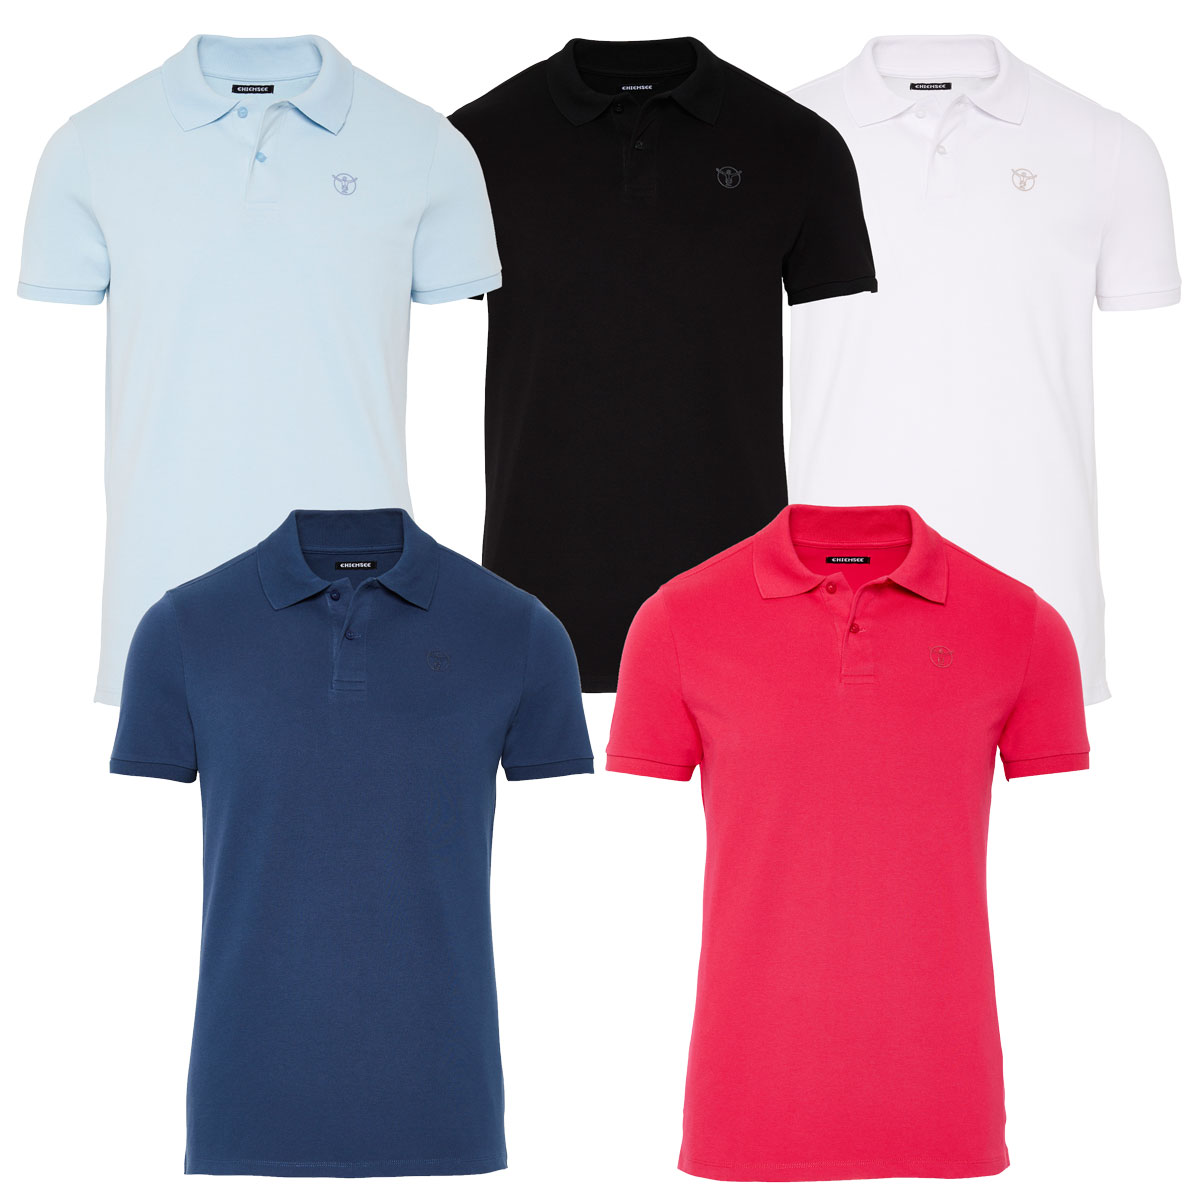 Chiemsee Herren Polo Shirt, T-Shirt, Marsa Men, Regular Fit – Bild 1